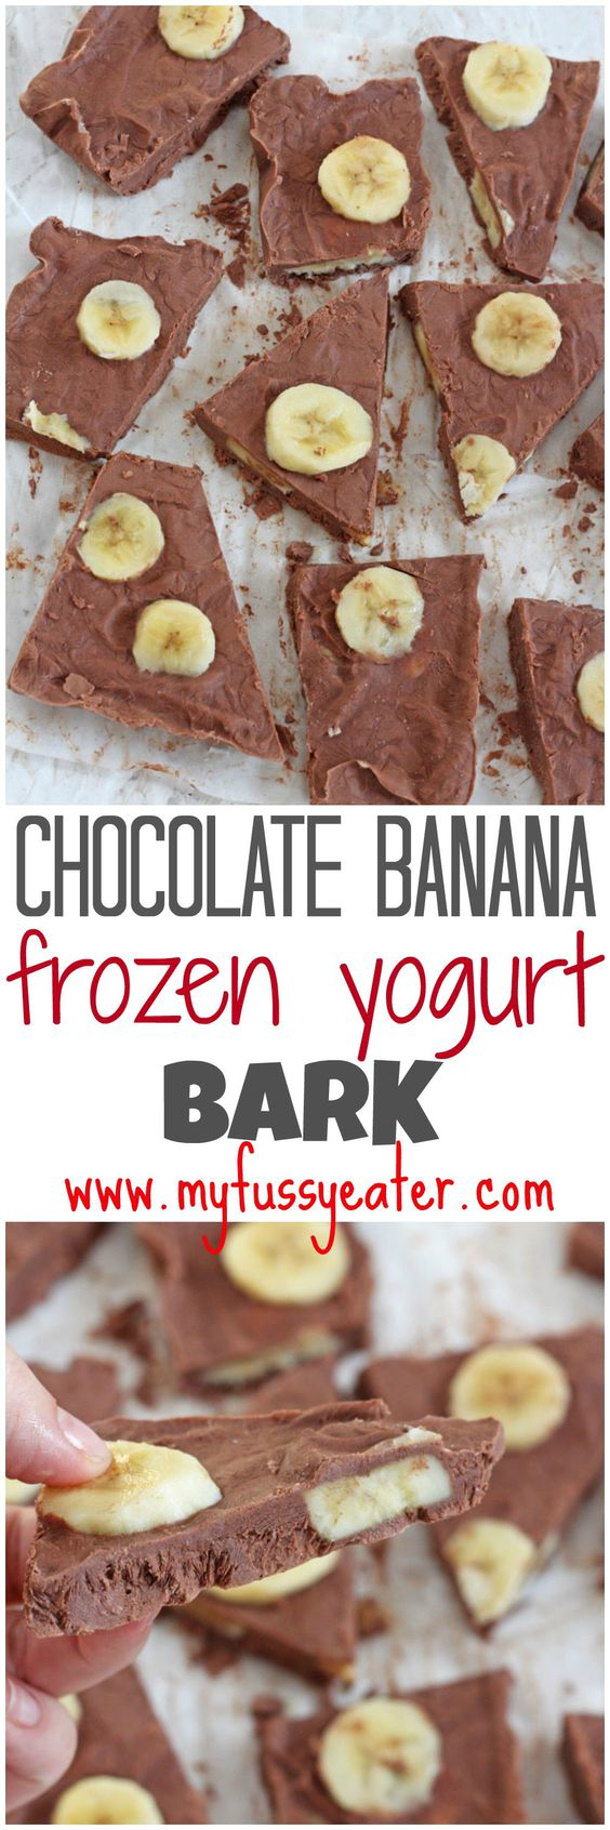 Healthy Snacks - Chocolate Banana Frozen Bark Recipe via My Fussy Eater